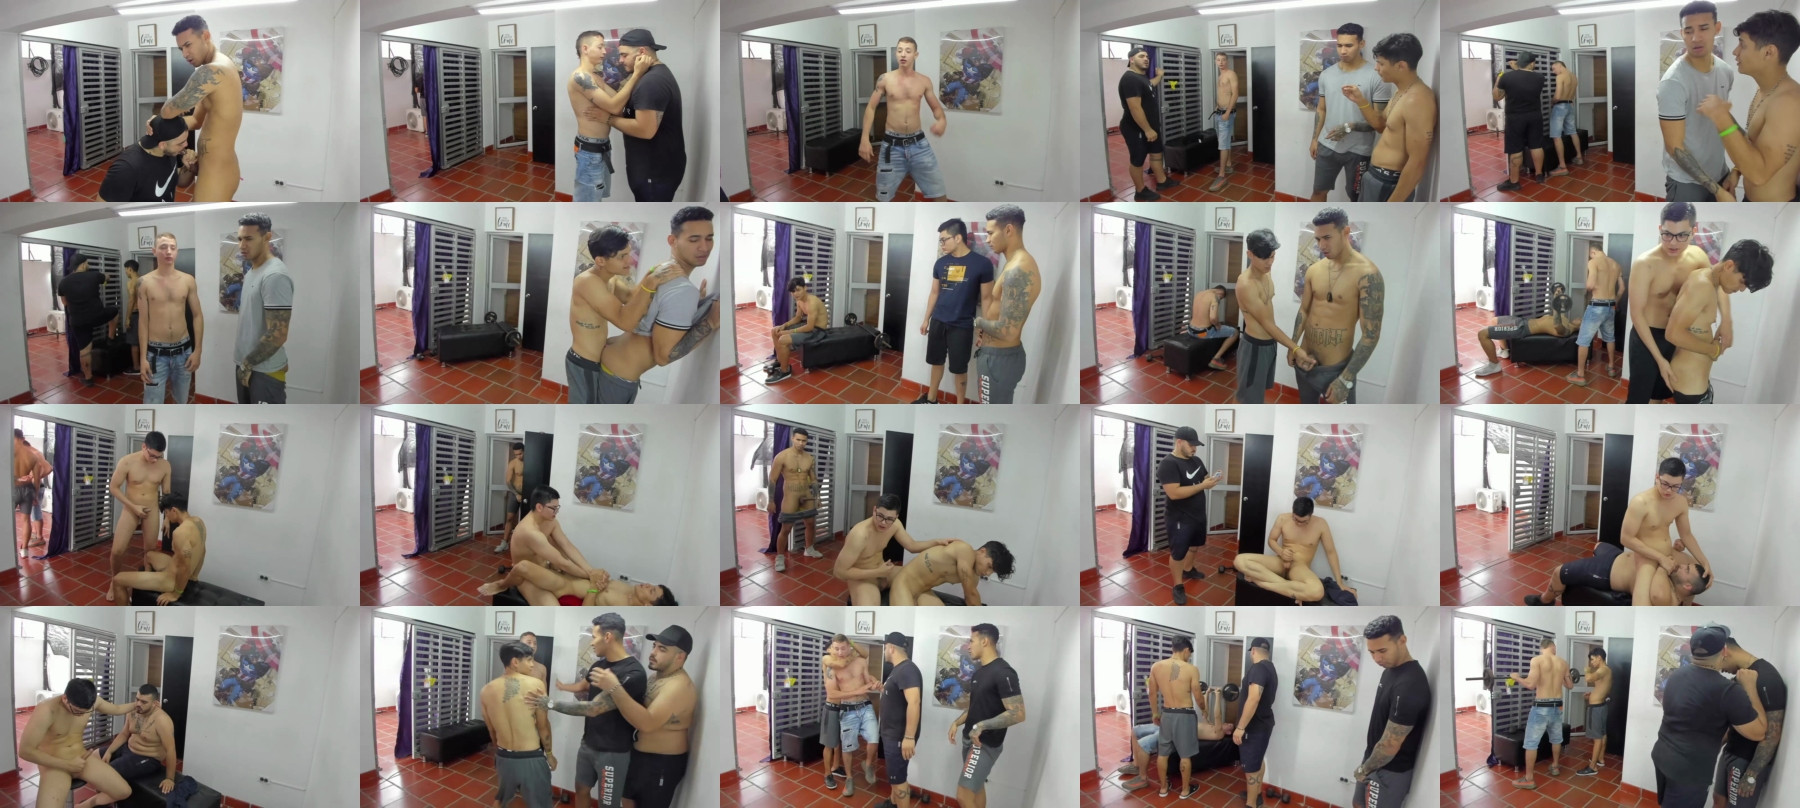 Badguys_Sex Topless CAM SHOW @ Chaturbate 31-03-2021